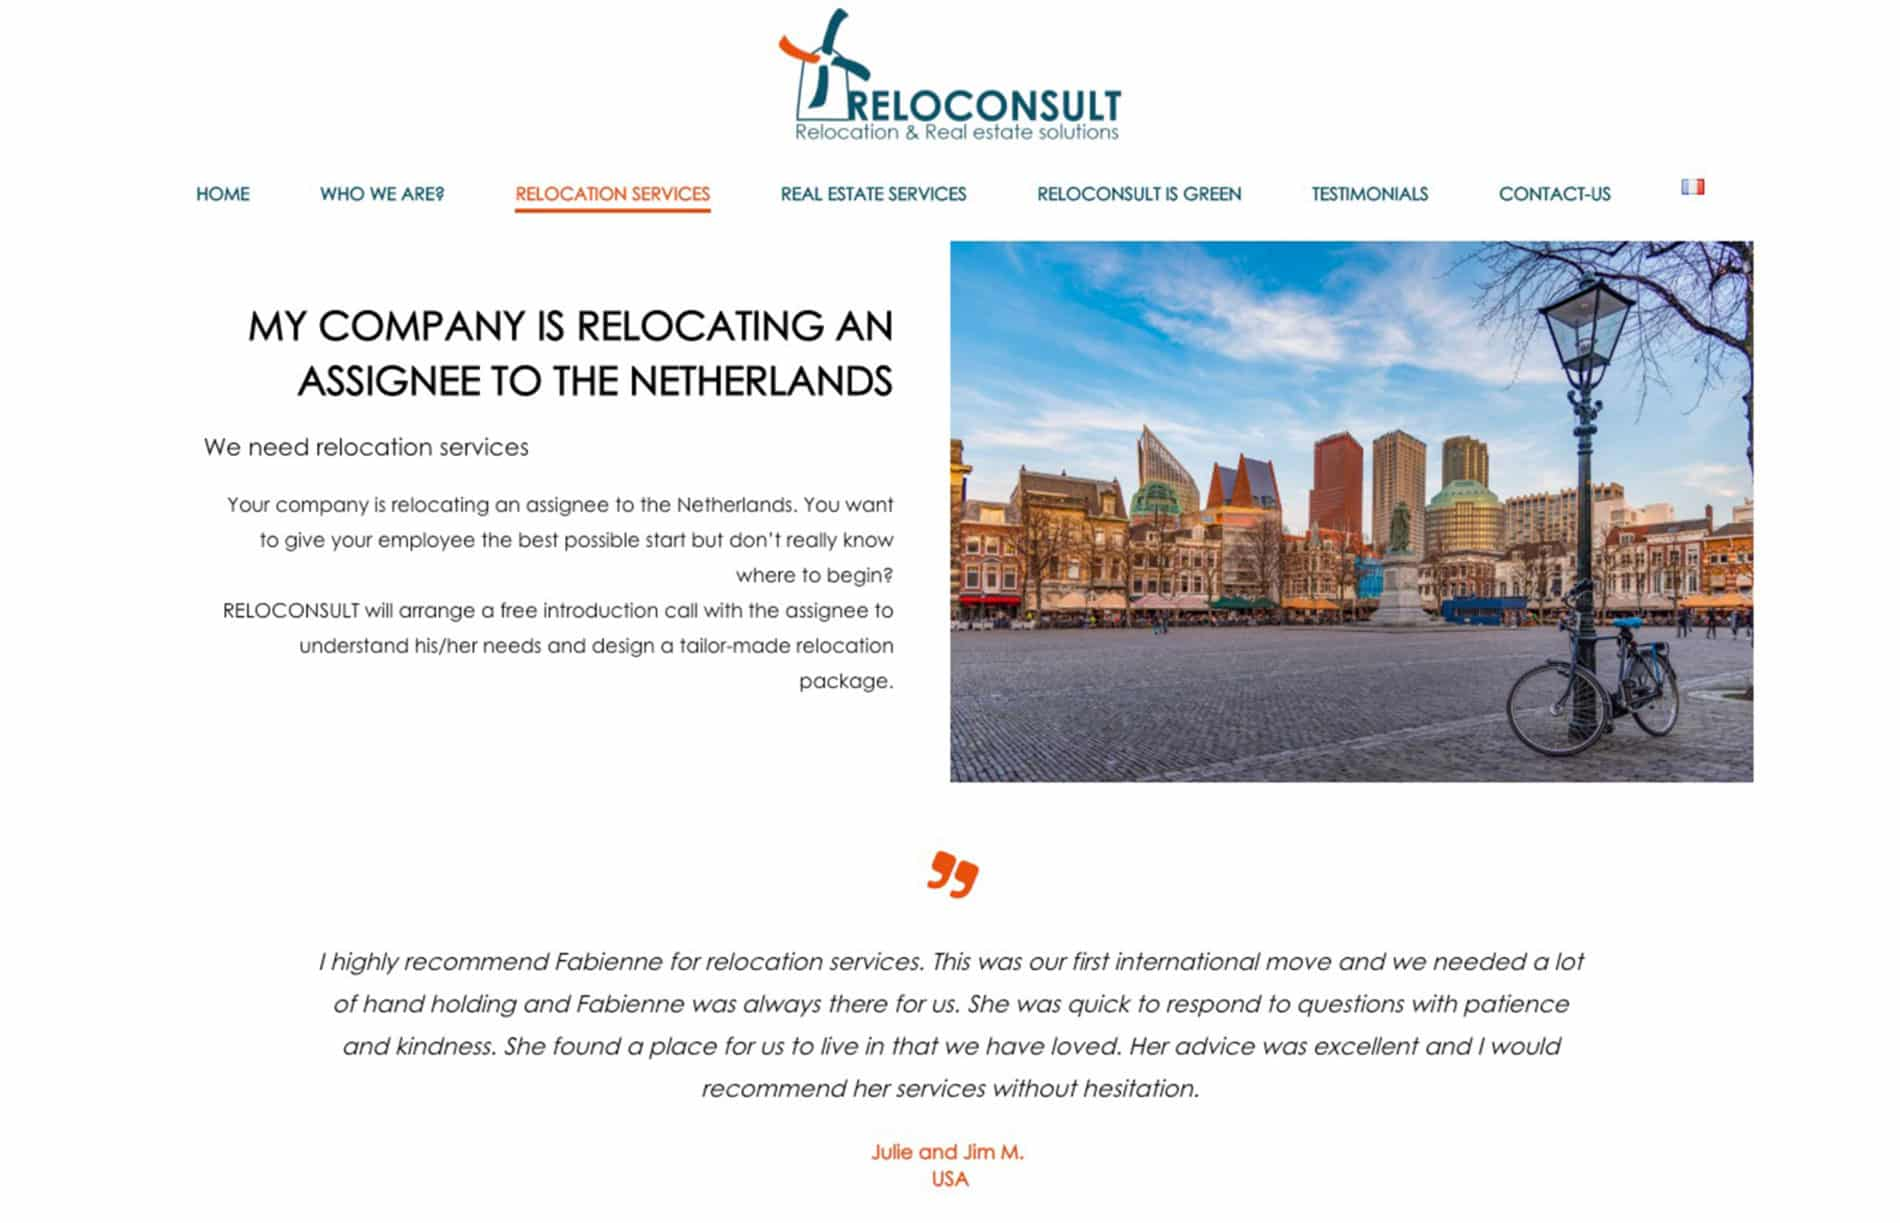 New-relocation-service page-Reloconsult-by-Rocque-Design